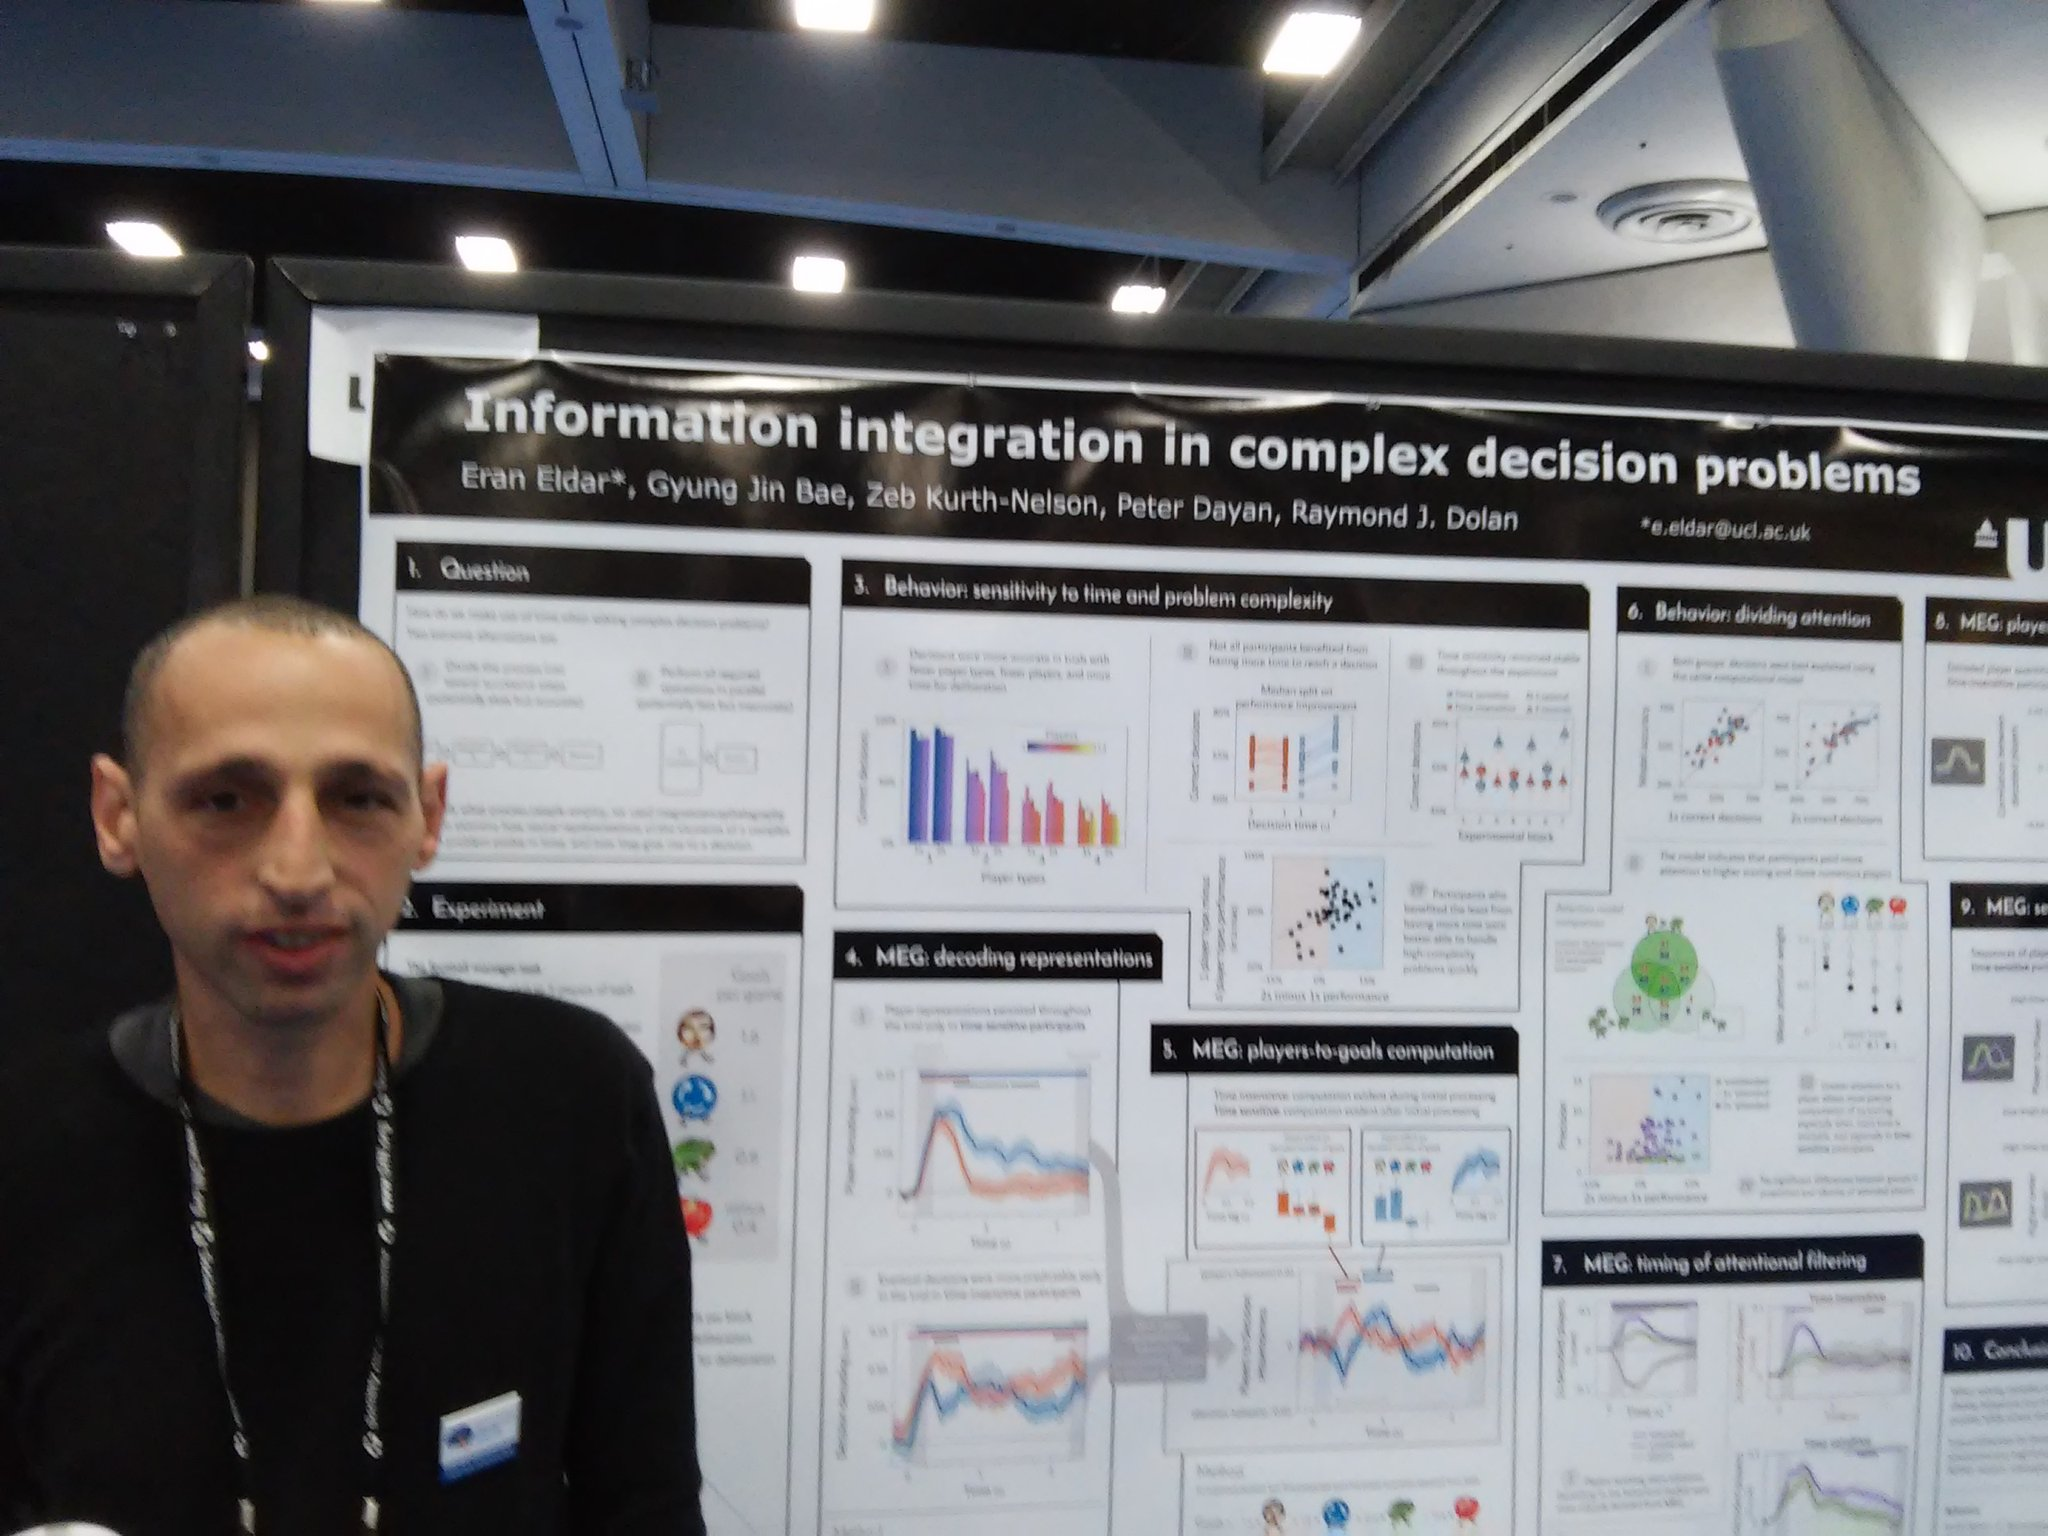 Poster LLL15 Eran Eldar uses MEG decoding and comp modeling to distinguish sequential & parallel processing of decisions #sfn16 #plos https://t.co/GaircOXYzM